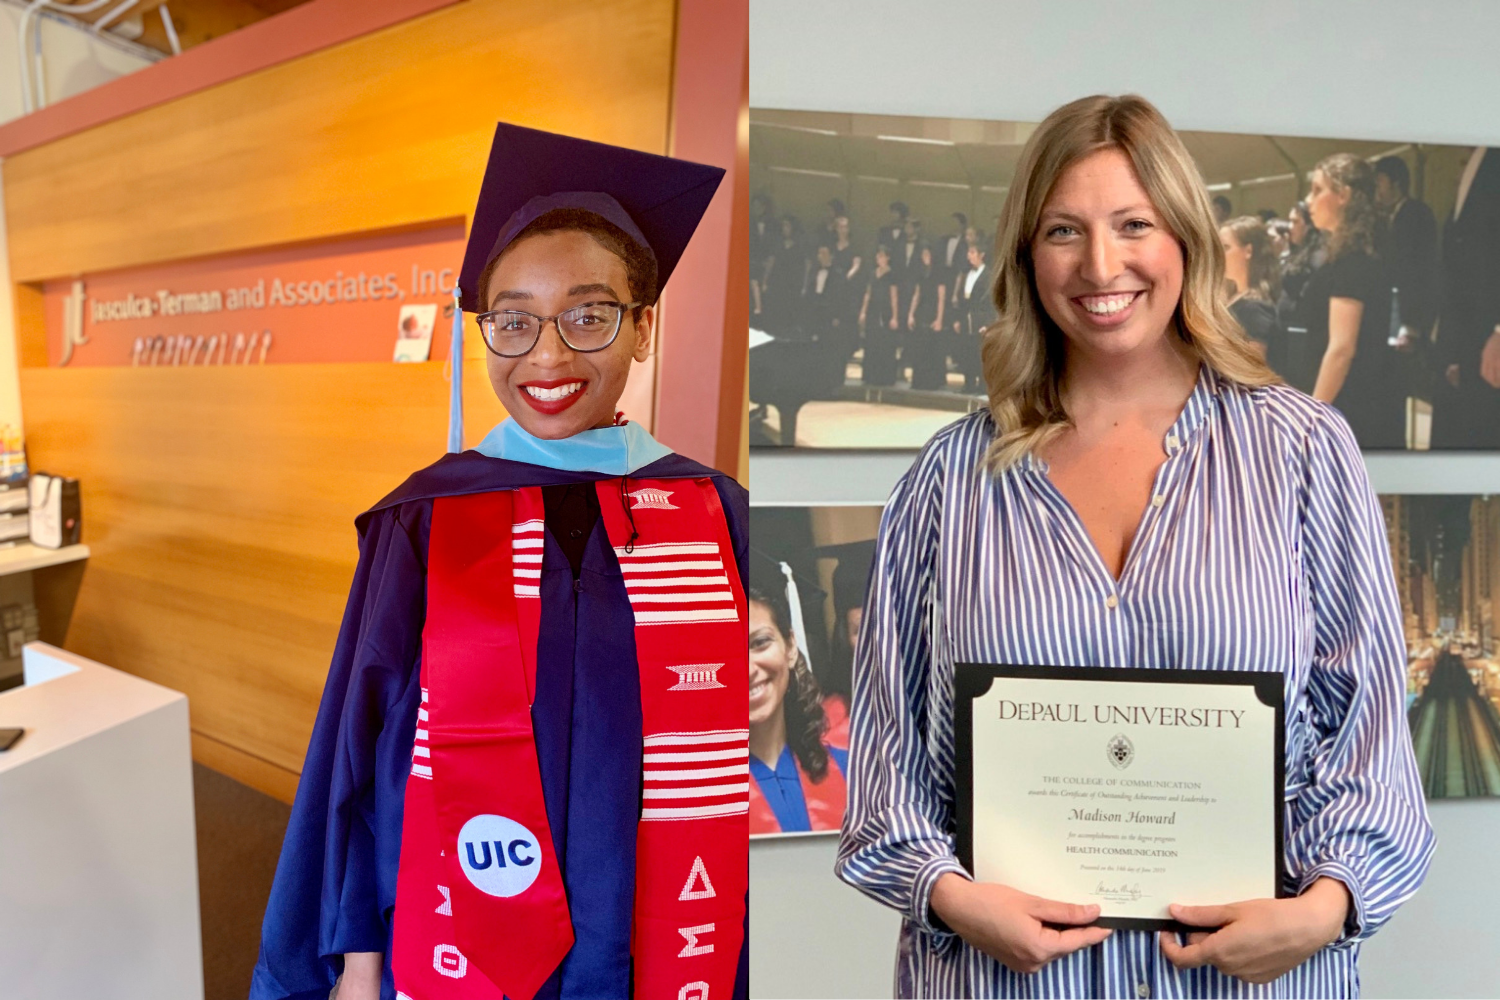 - JT Account Executive April McFadden and Jr. Account Executive Madison Howard reflect on balancing the demands of work and graduate school.